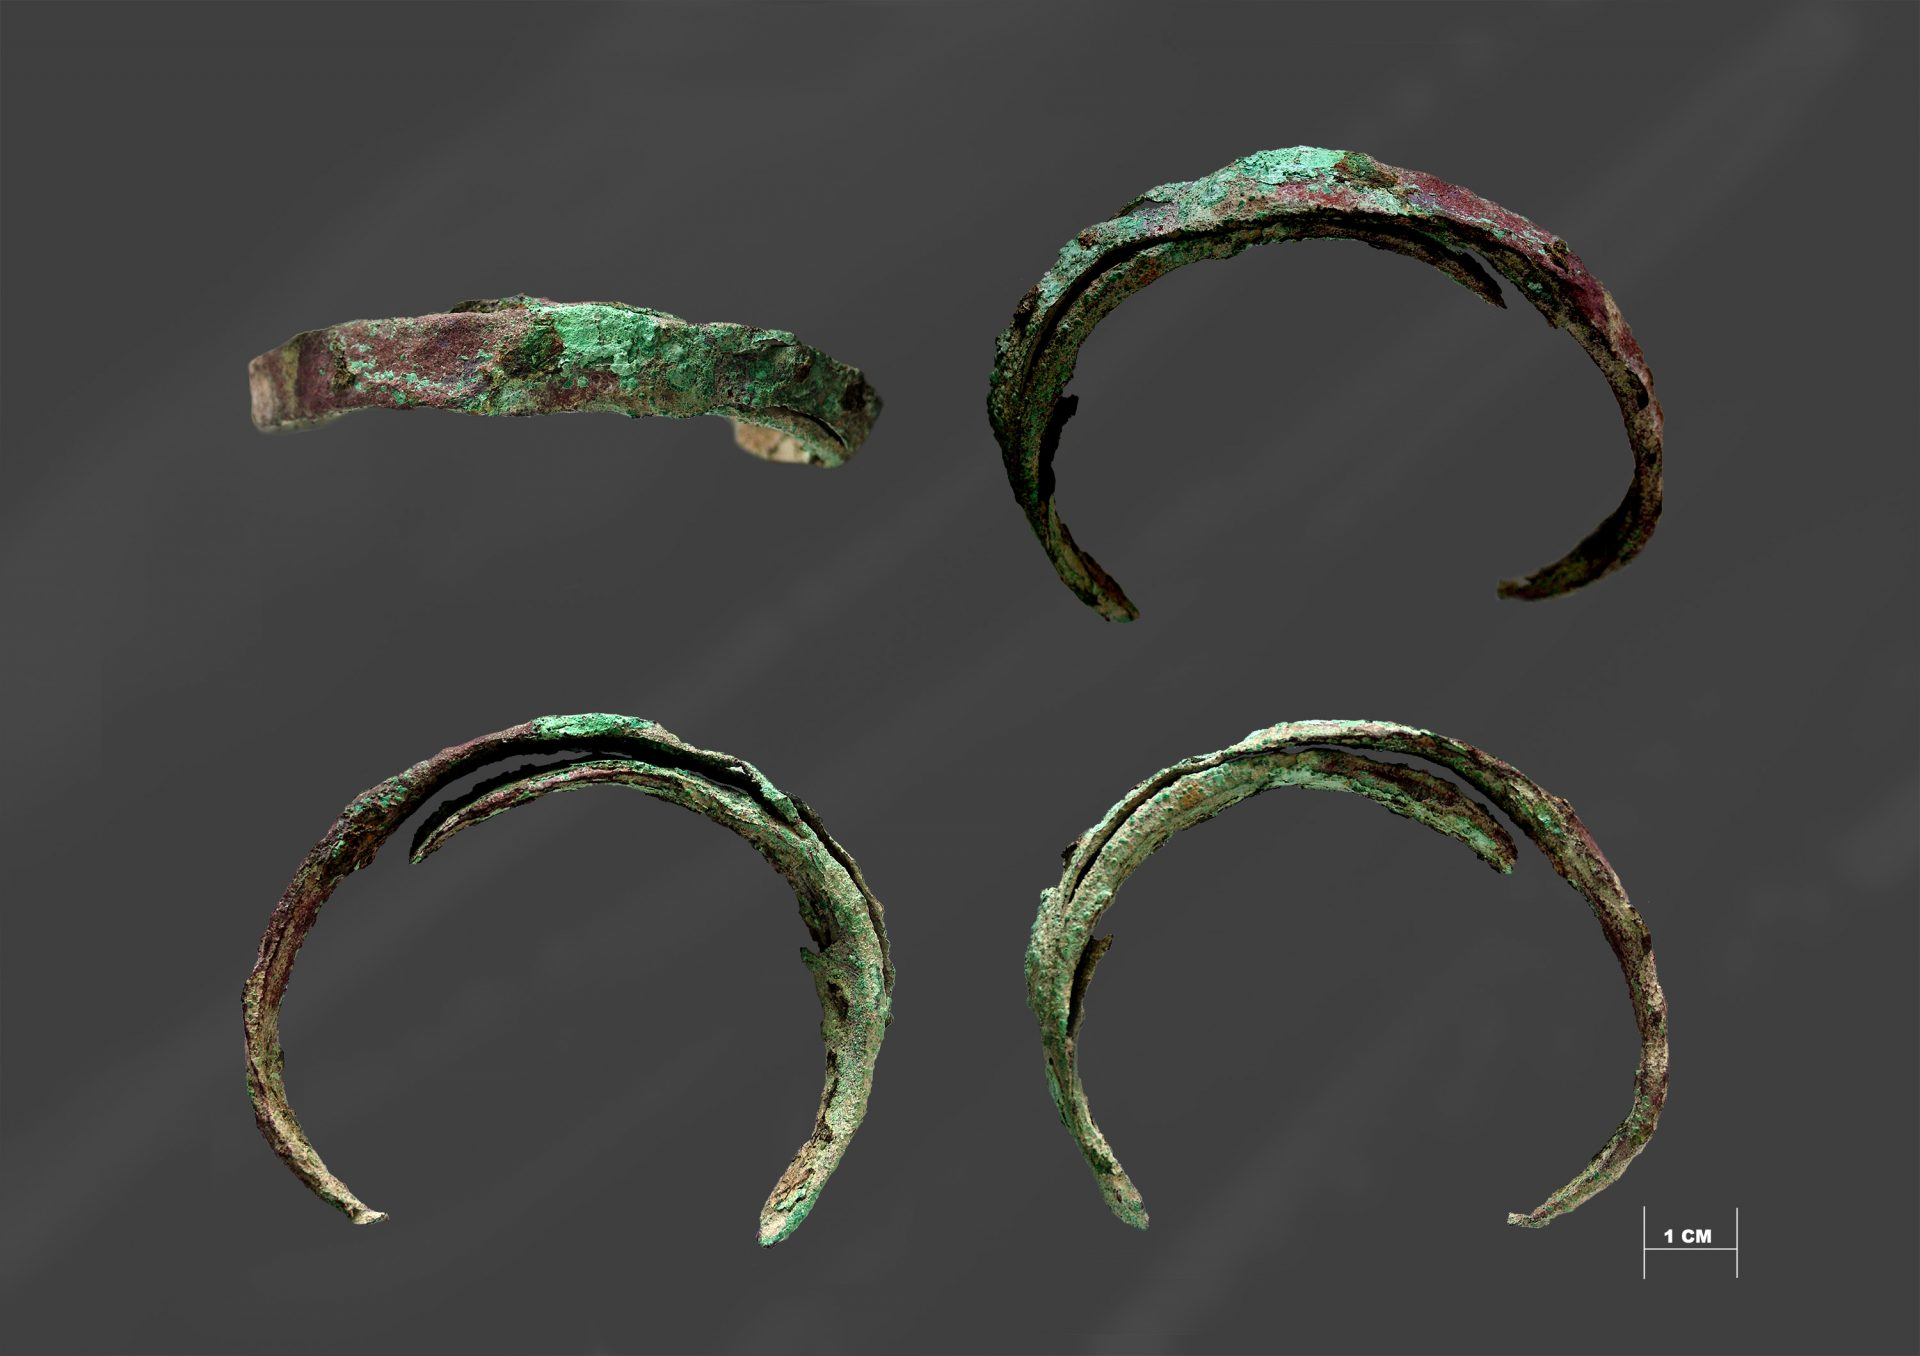 Copper bracelet excavated in the stone mound. Photo by Richard Moats.